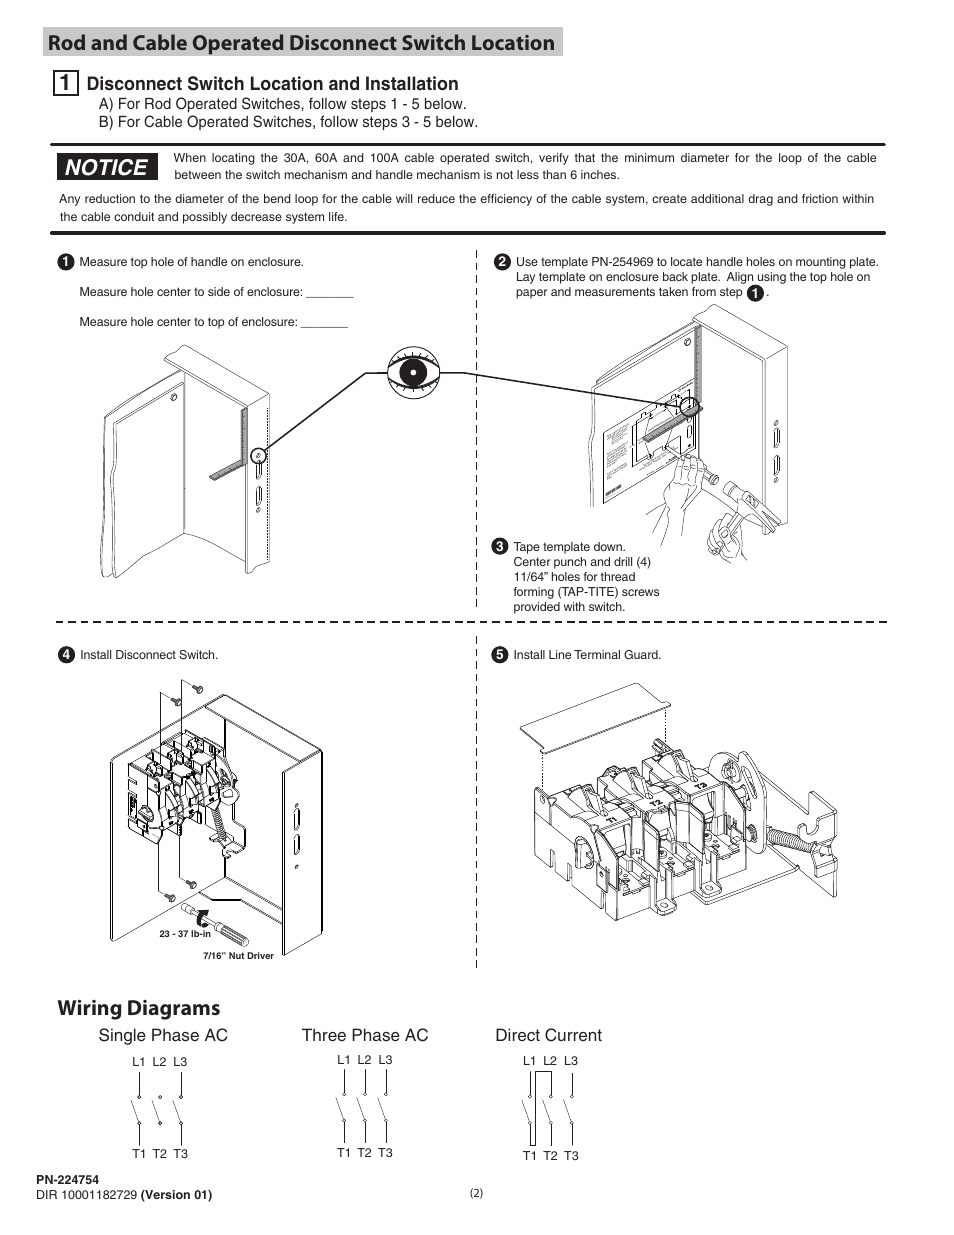 Notice  Disconnect Switch Location And Installation  Single Phase Ac Three Phase Ac Direct